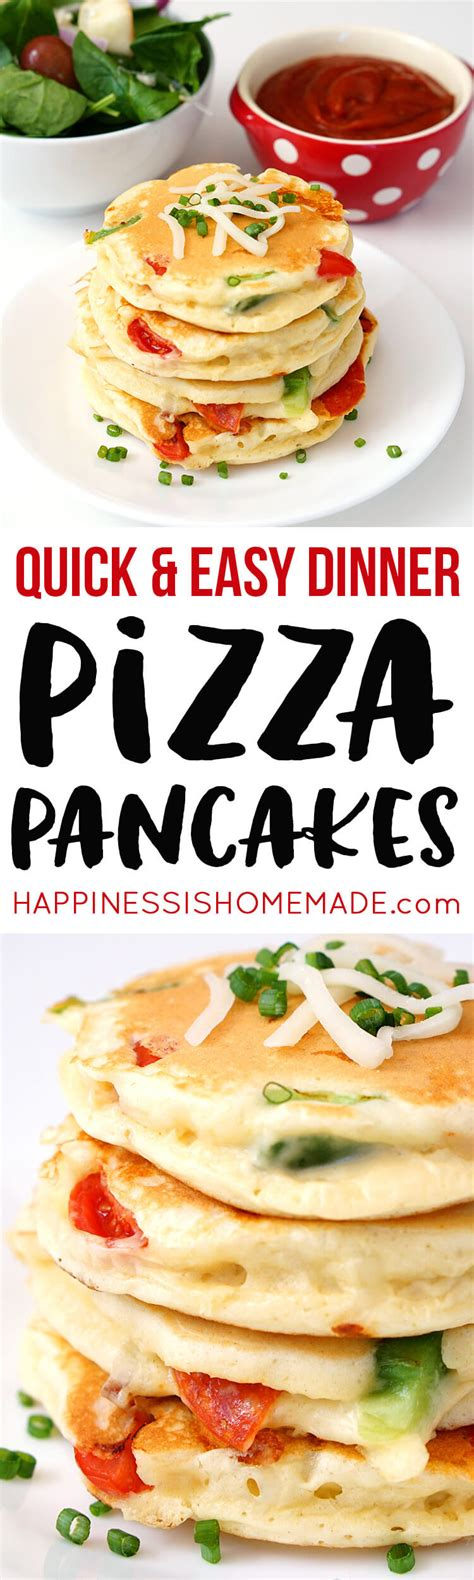 Pizza Pancakes  Quick & Easy Dinner Idea  Happiness Is